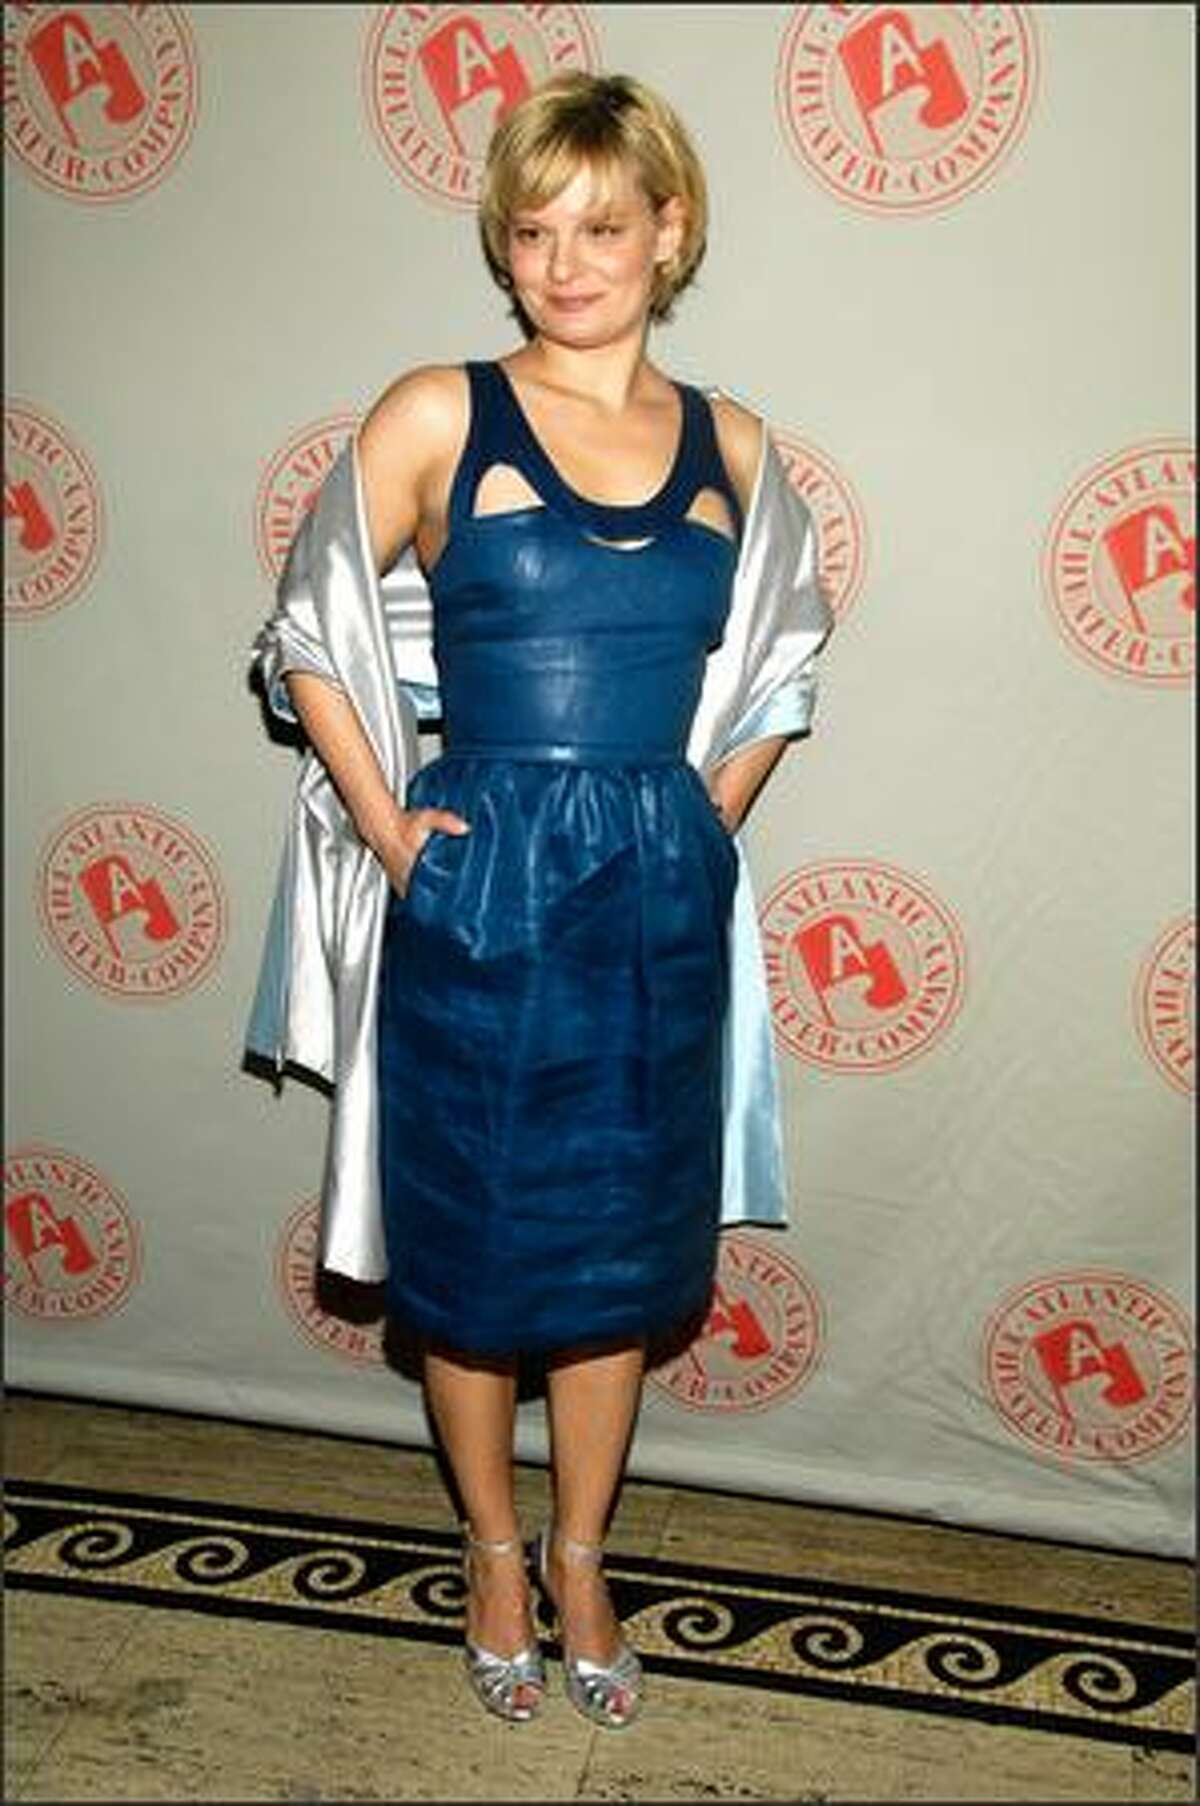 Actress Martha Plimpton attends the Atlantic Theater Company's 2009 Spring Gala in New York City.